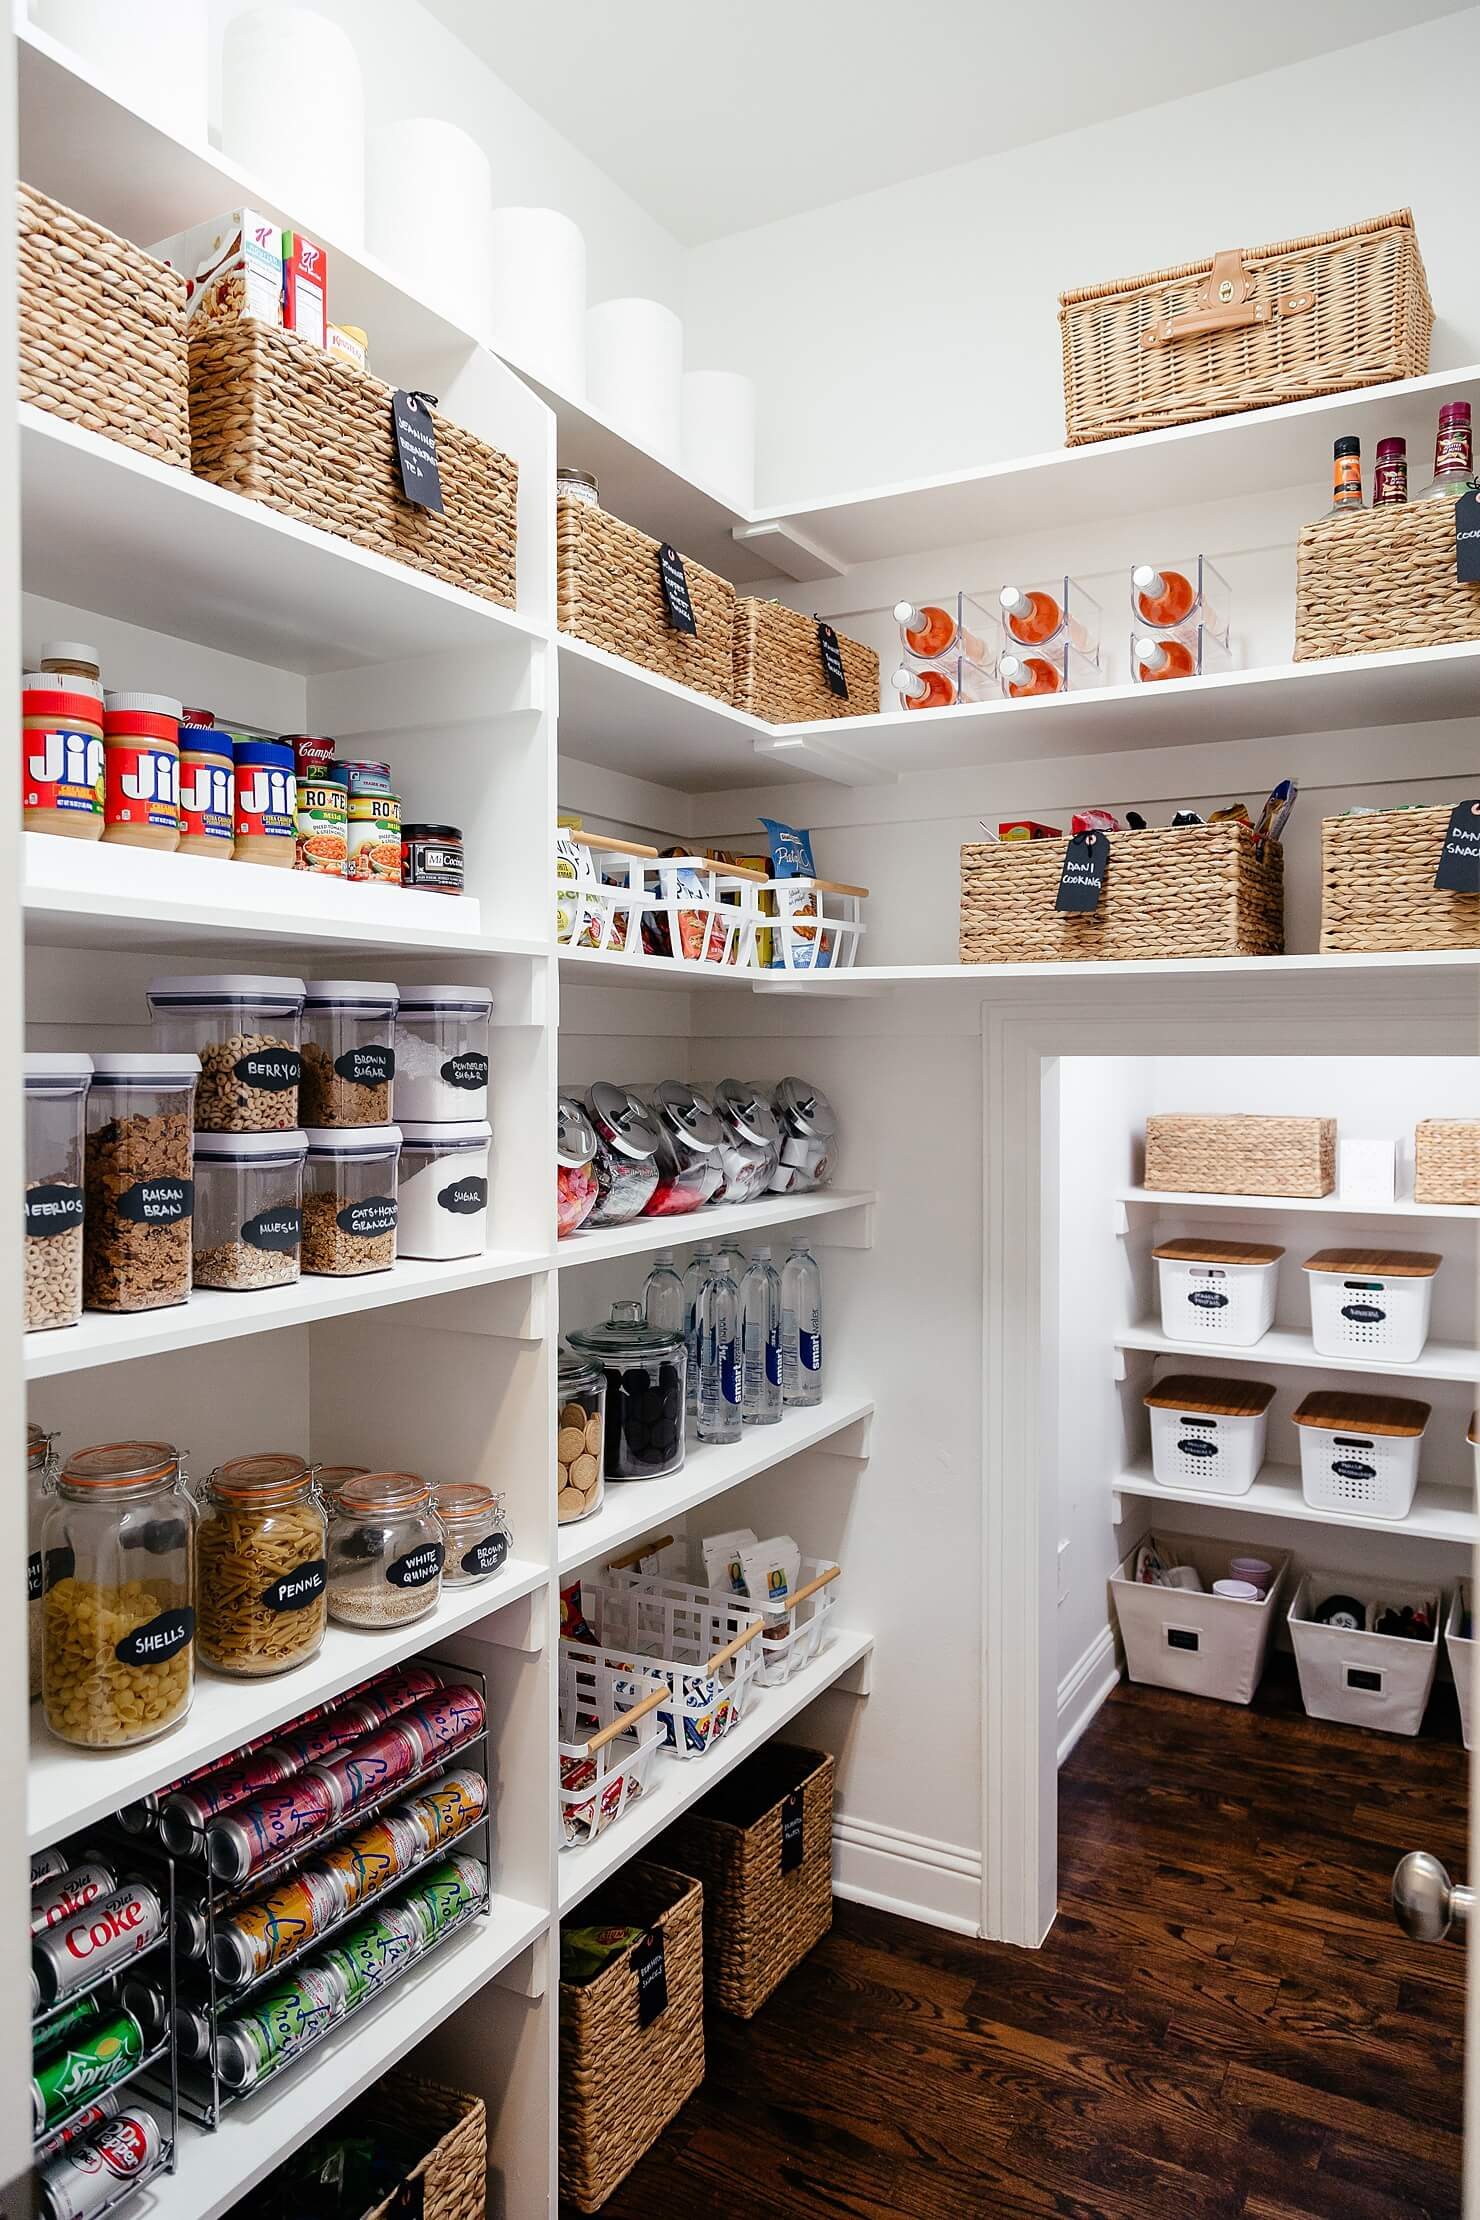 storage pin pantrys is turn great these your nightmare cabinets or dream pantry and into with pantries disorganized kitchen cluttered a best organizers